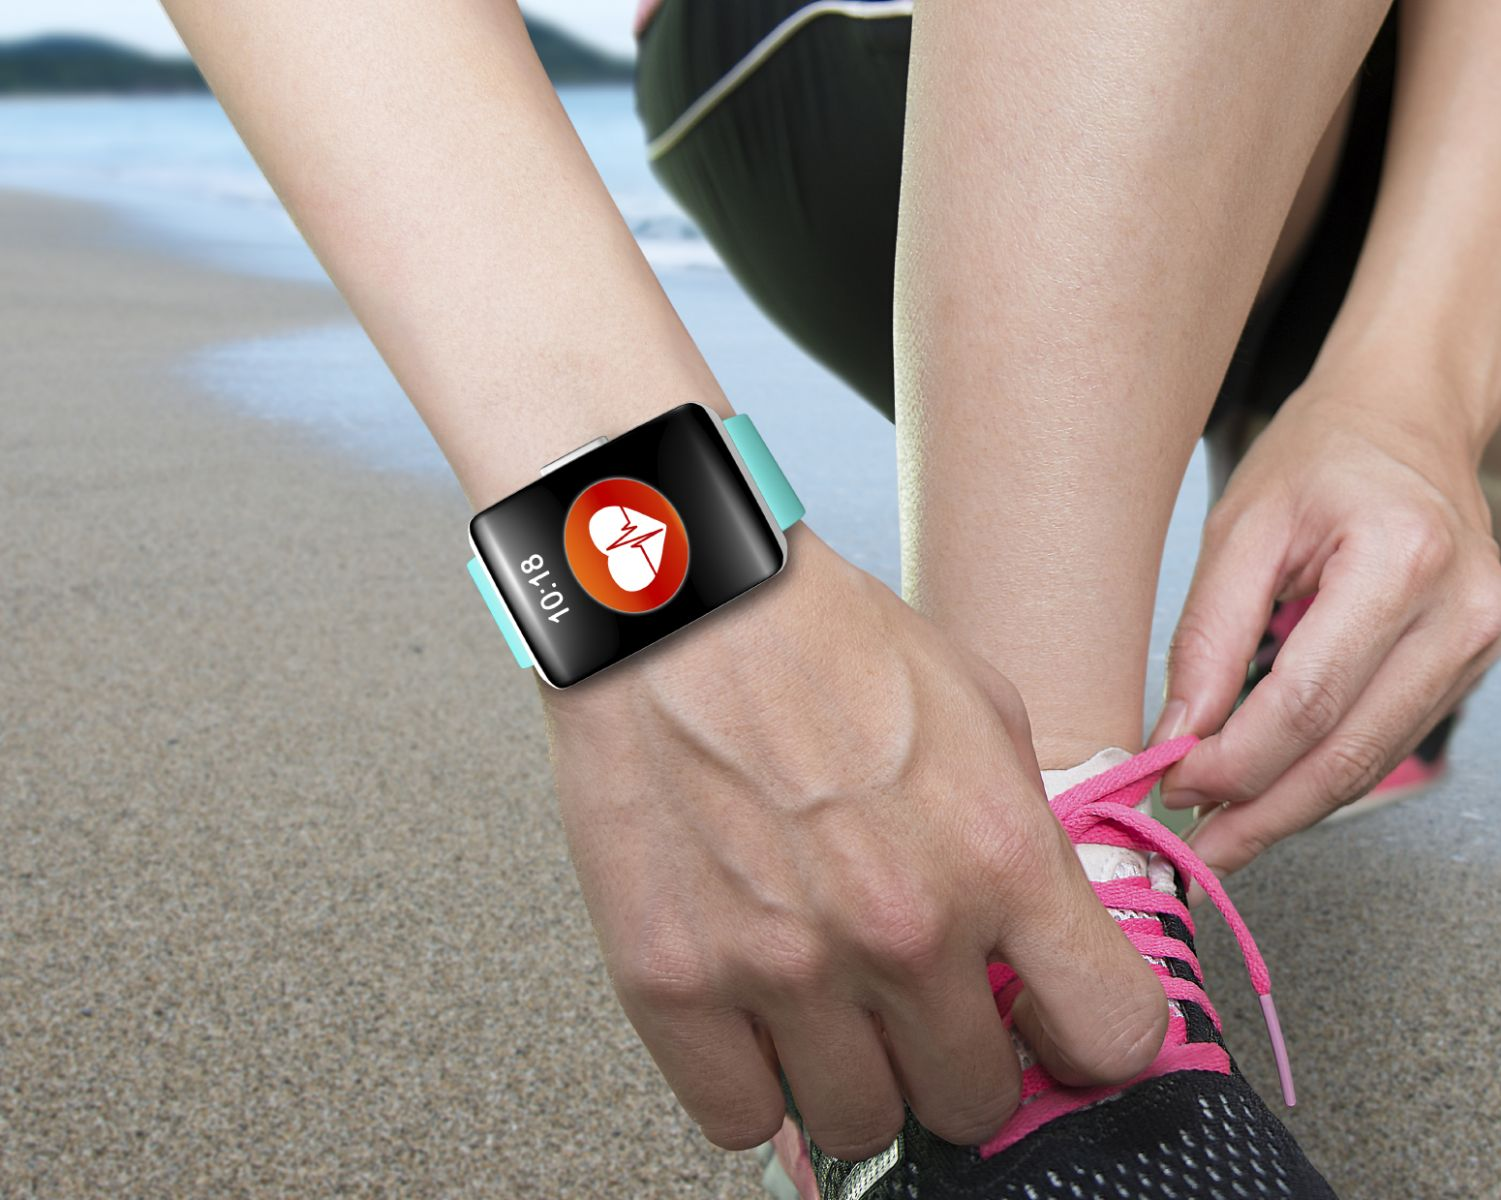 How Wearable Technology Can Improve Our Health And Daily Activities